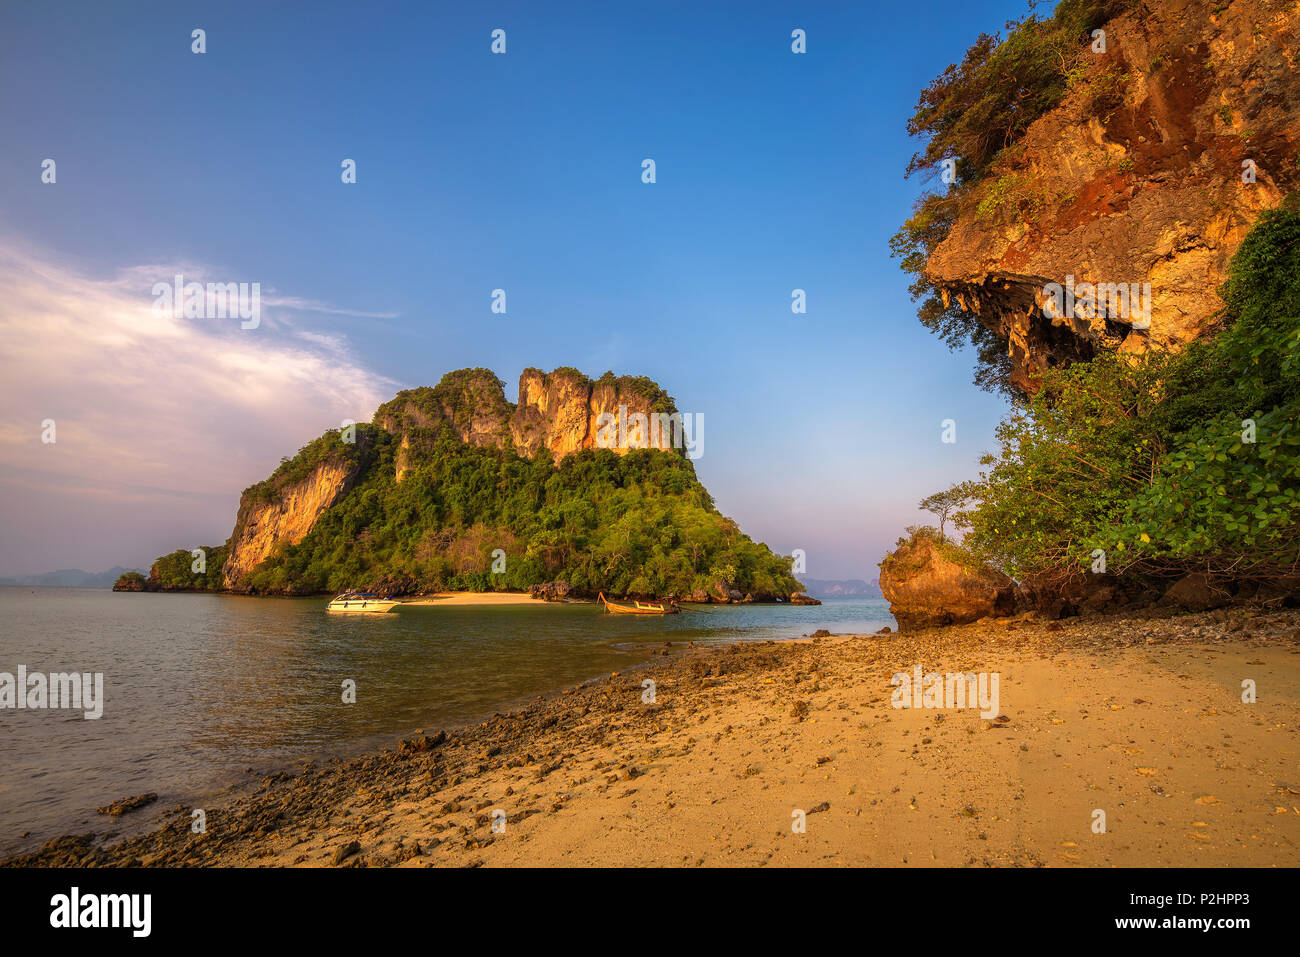 Evening at the beach of Ko Hong island in the Krabi province, Thailand - Stock Image